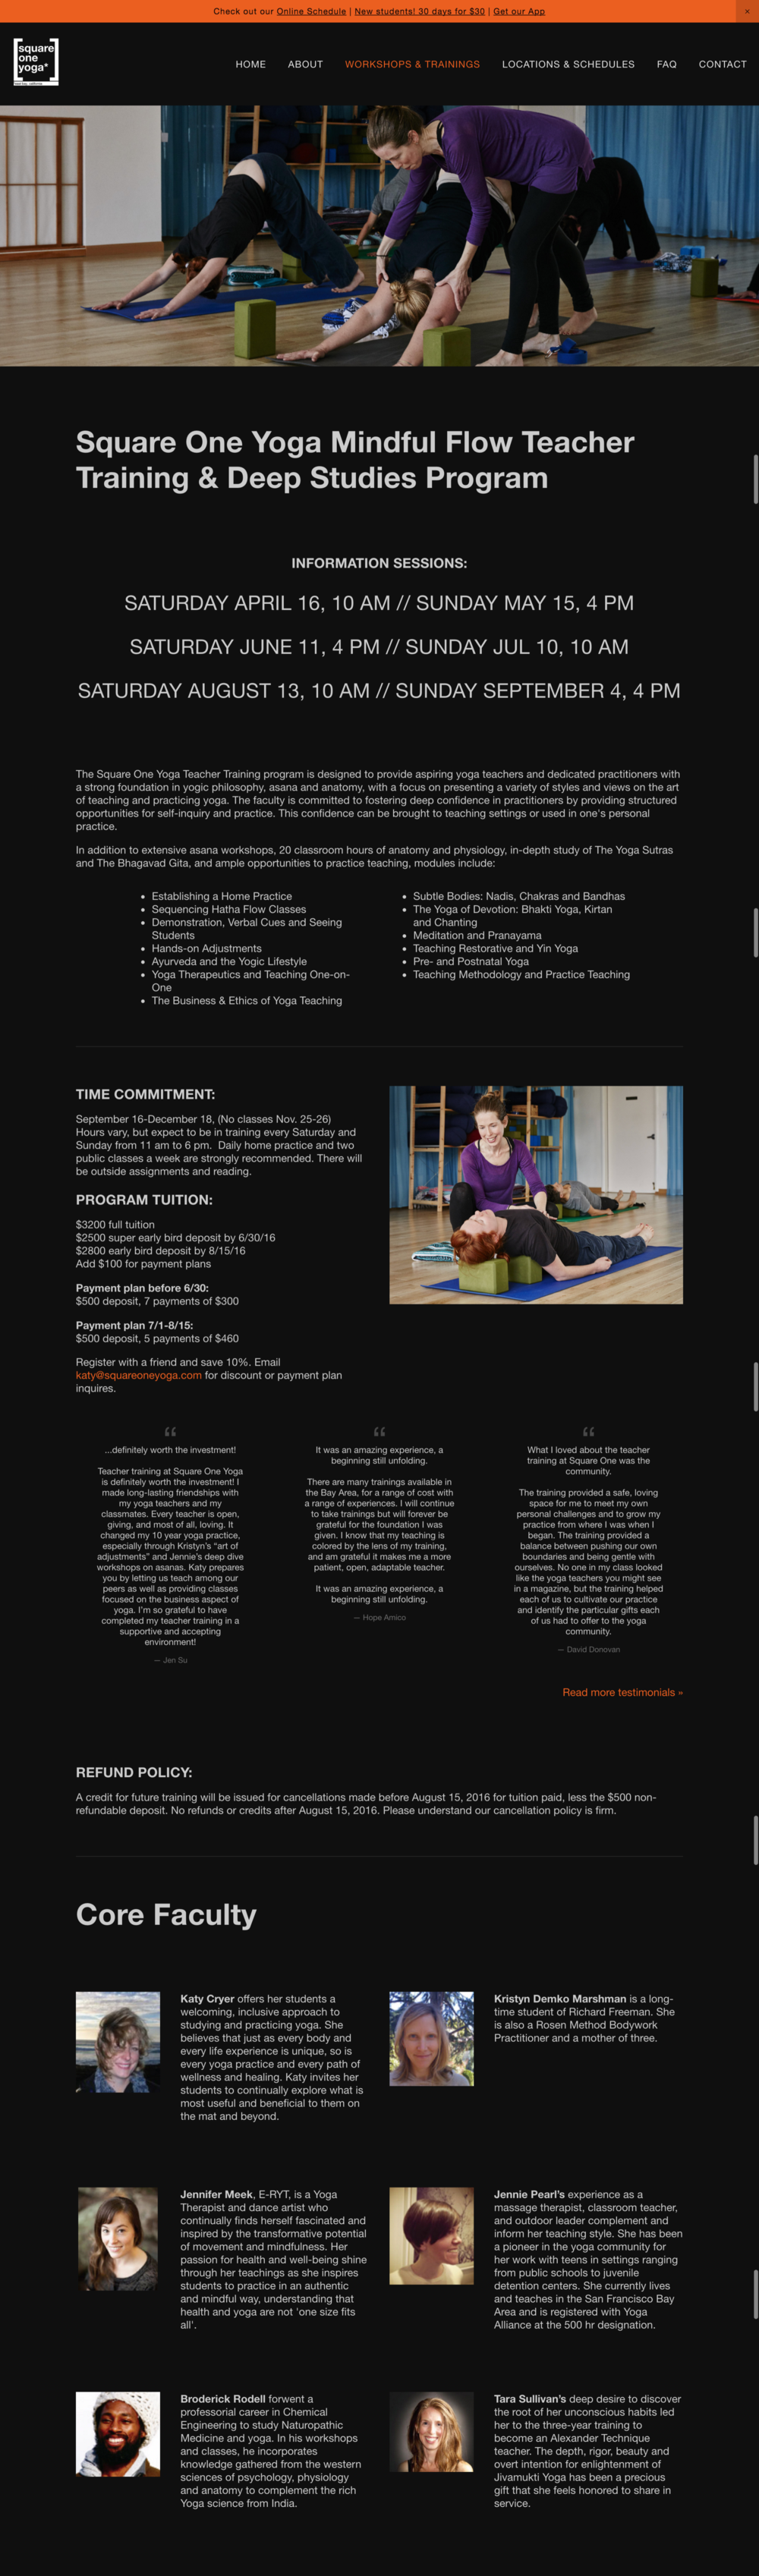 Teacher Trainings — Square One Yoga.png